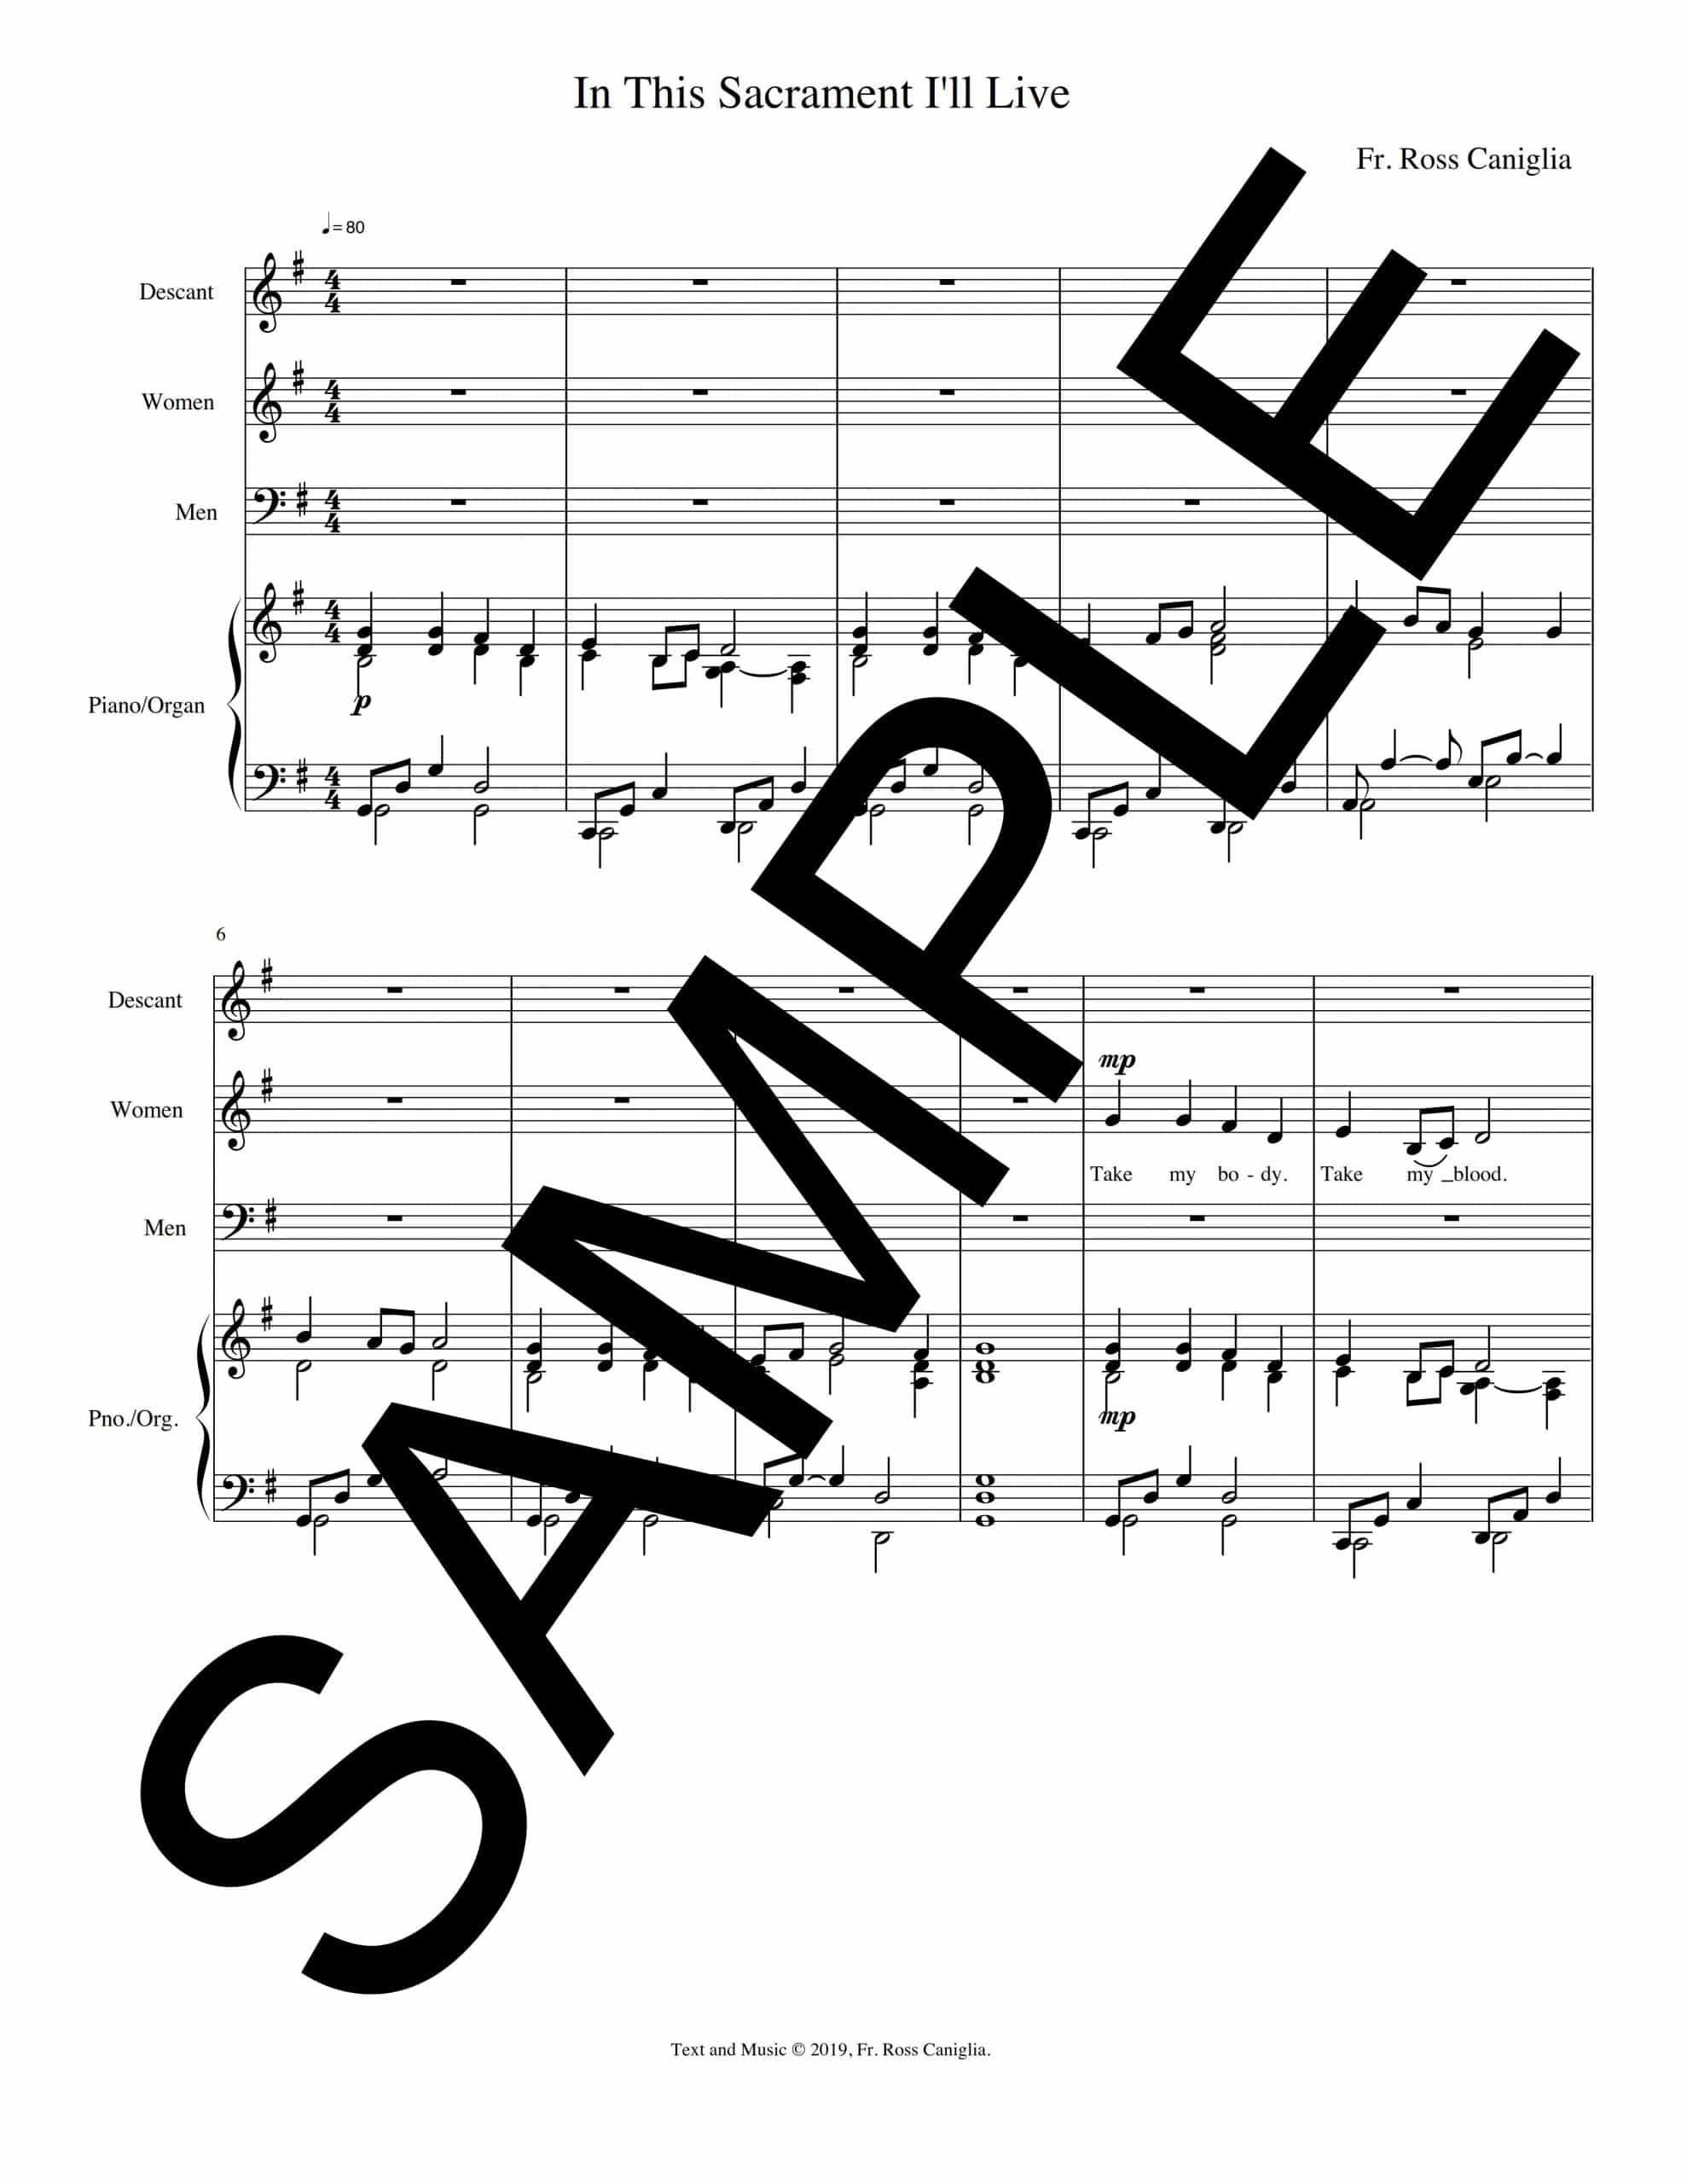 In This Sacrament Ill Live Sample Musicians Parts scaled